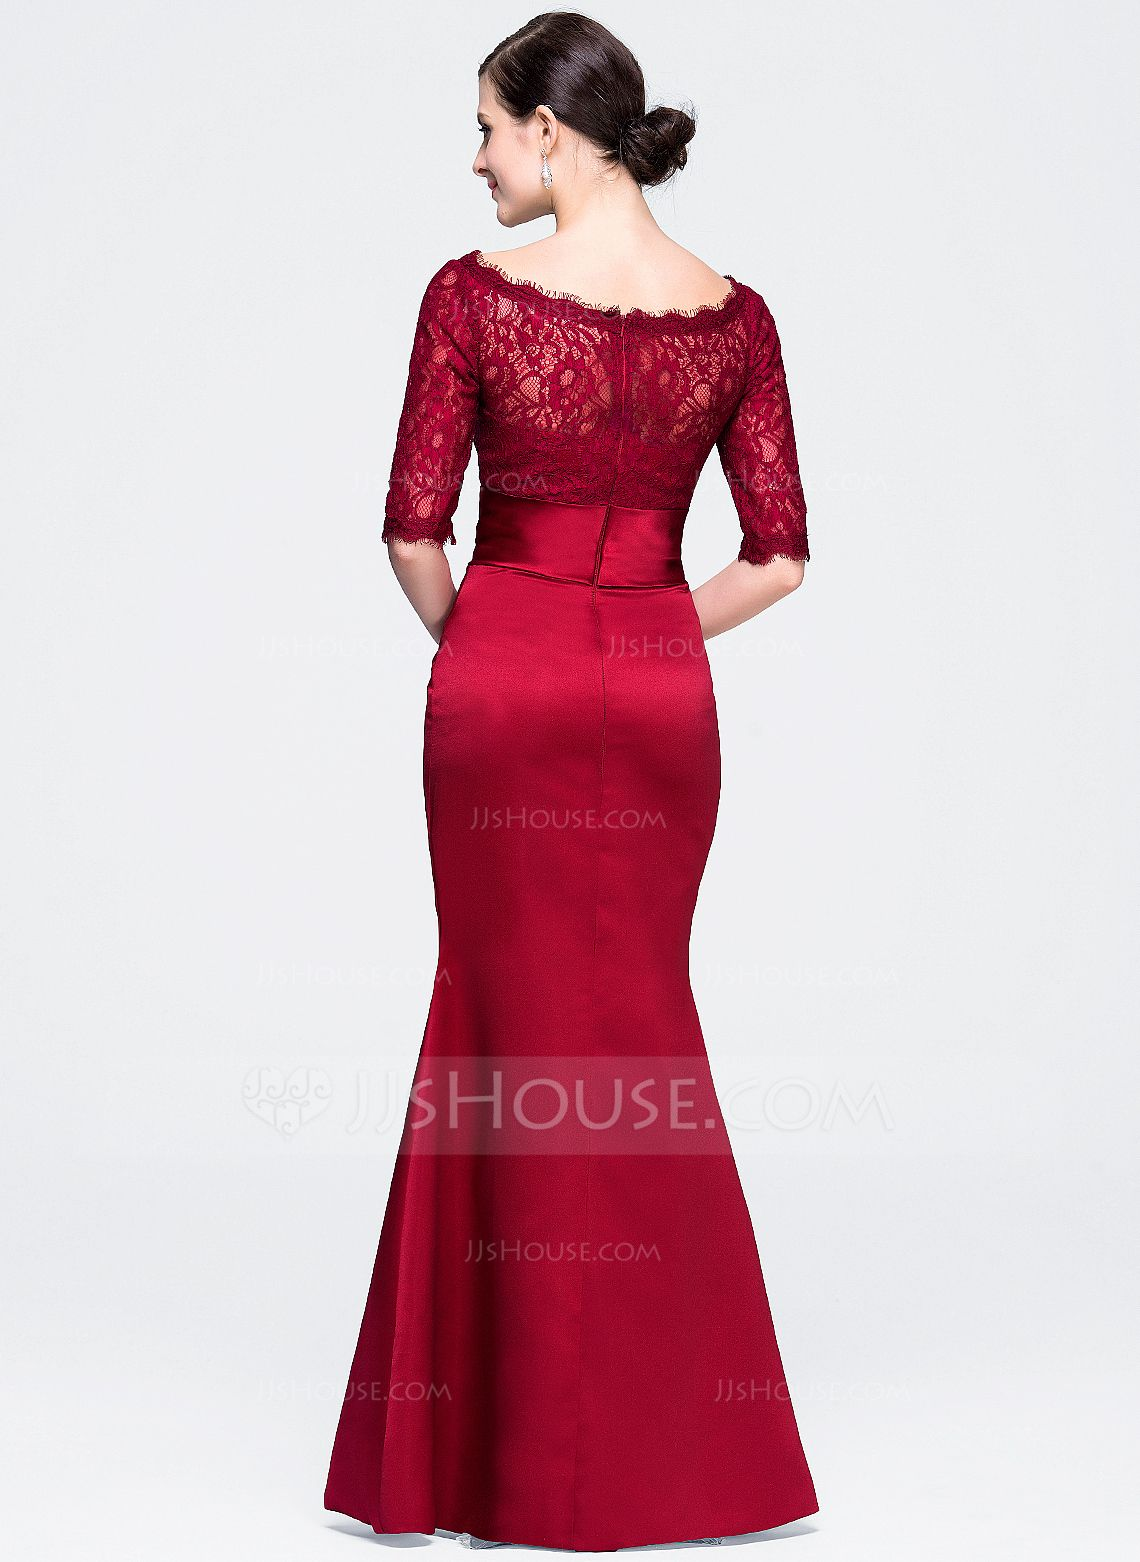 2e894760d Trumpet Mermaid Scoop Neck Floor-Length Satin Lace Evening Dress  (017071564) - JJsHouse